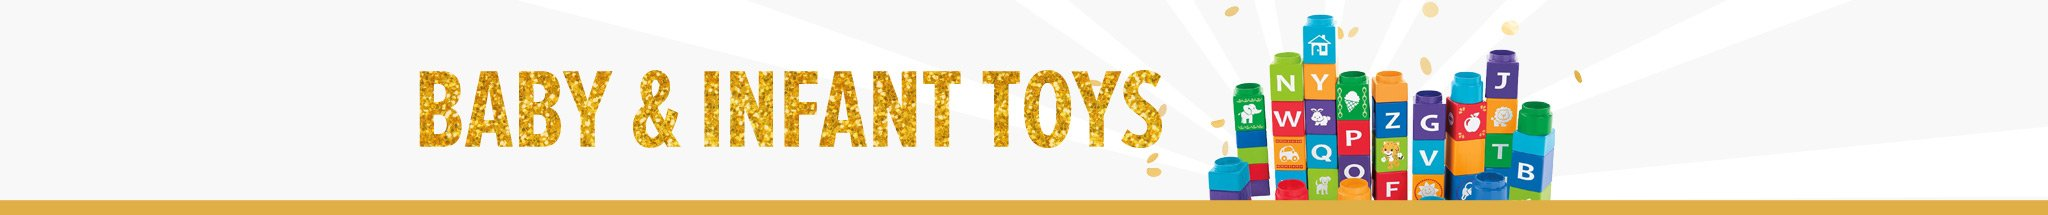 Baby & Infant Toys